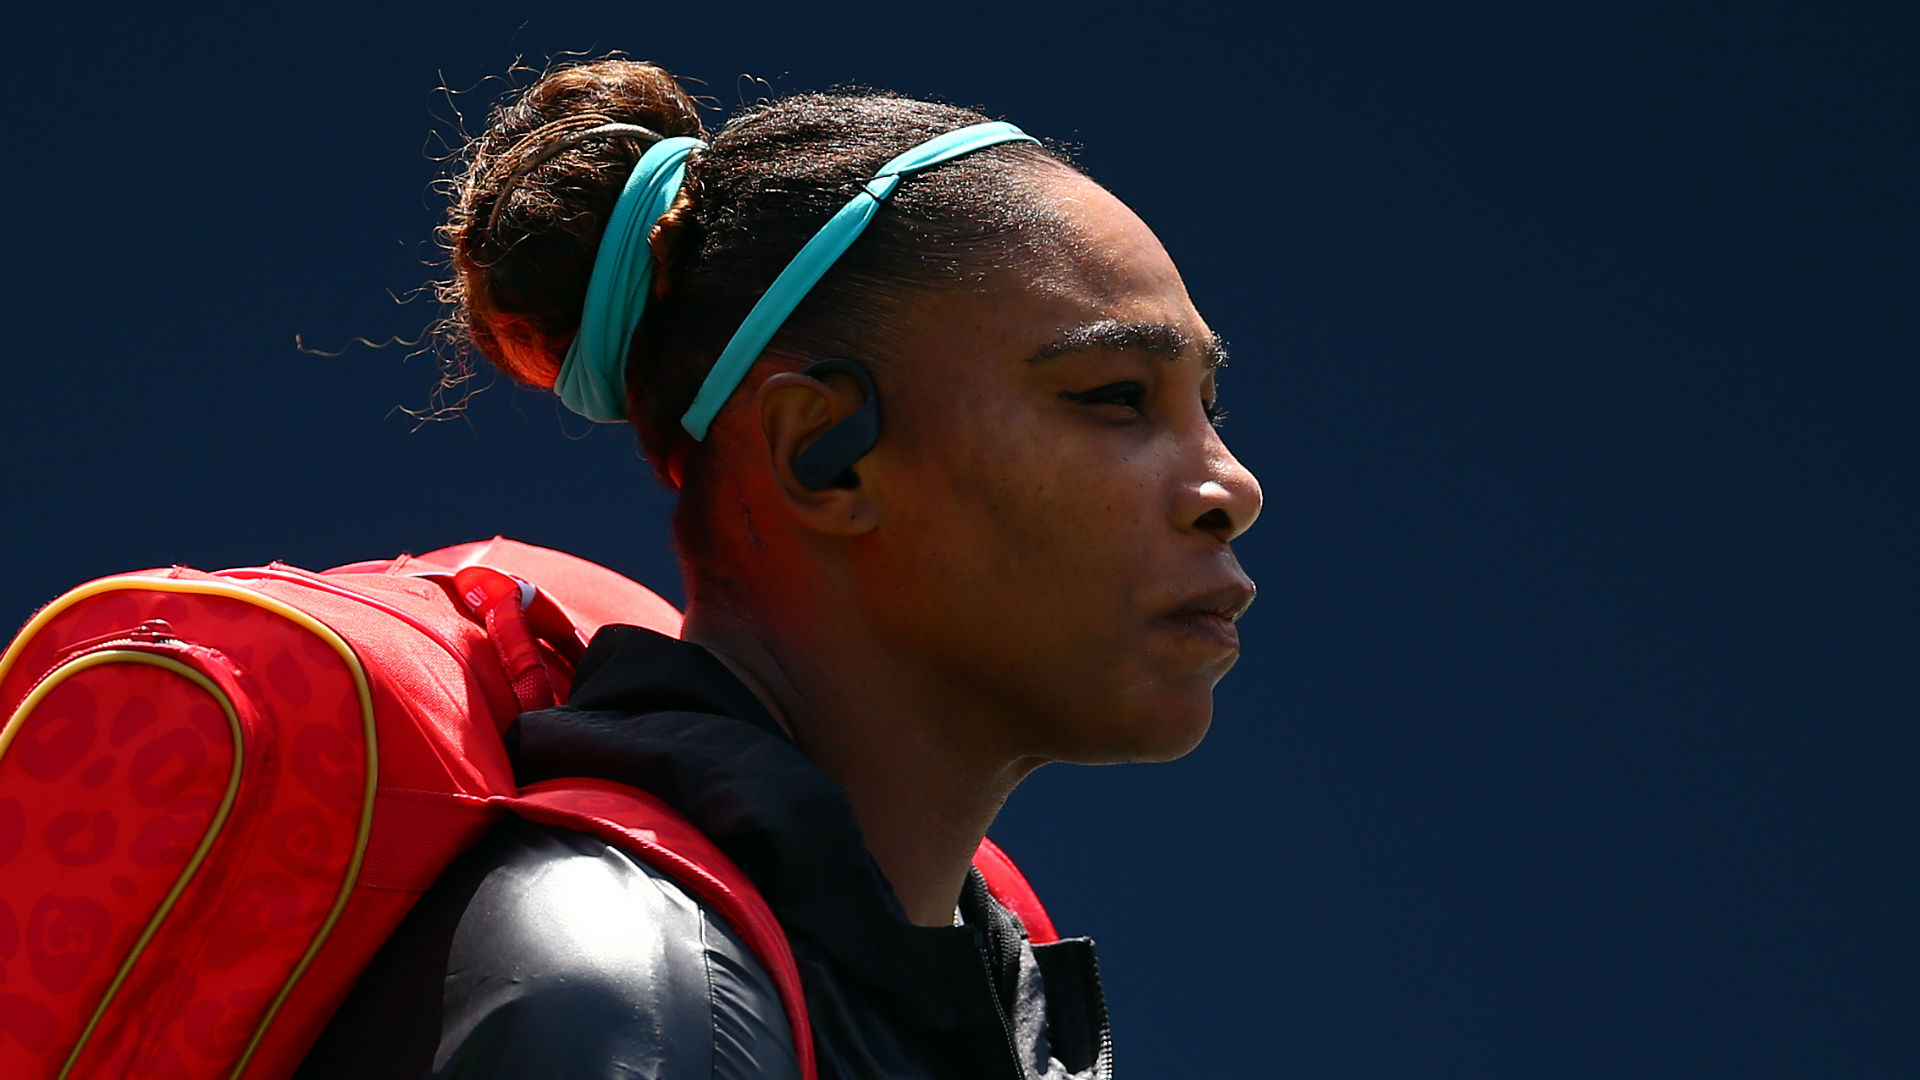 Serena Williams has suffered three major final defeats since becoming a mum, but Darren Cahill is confident she will add to her tally.